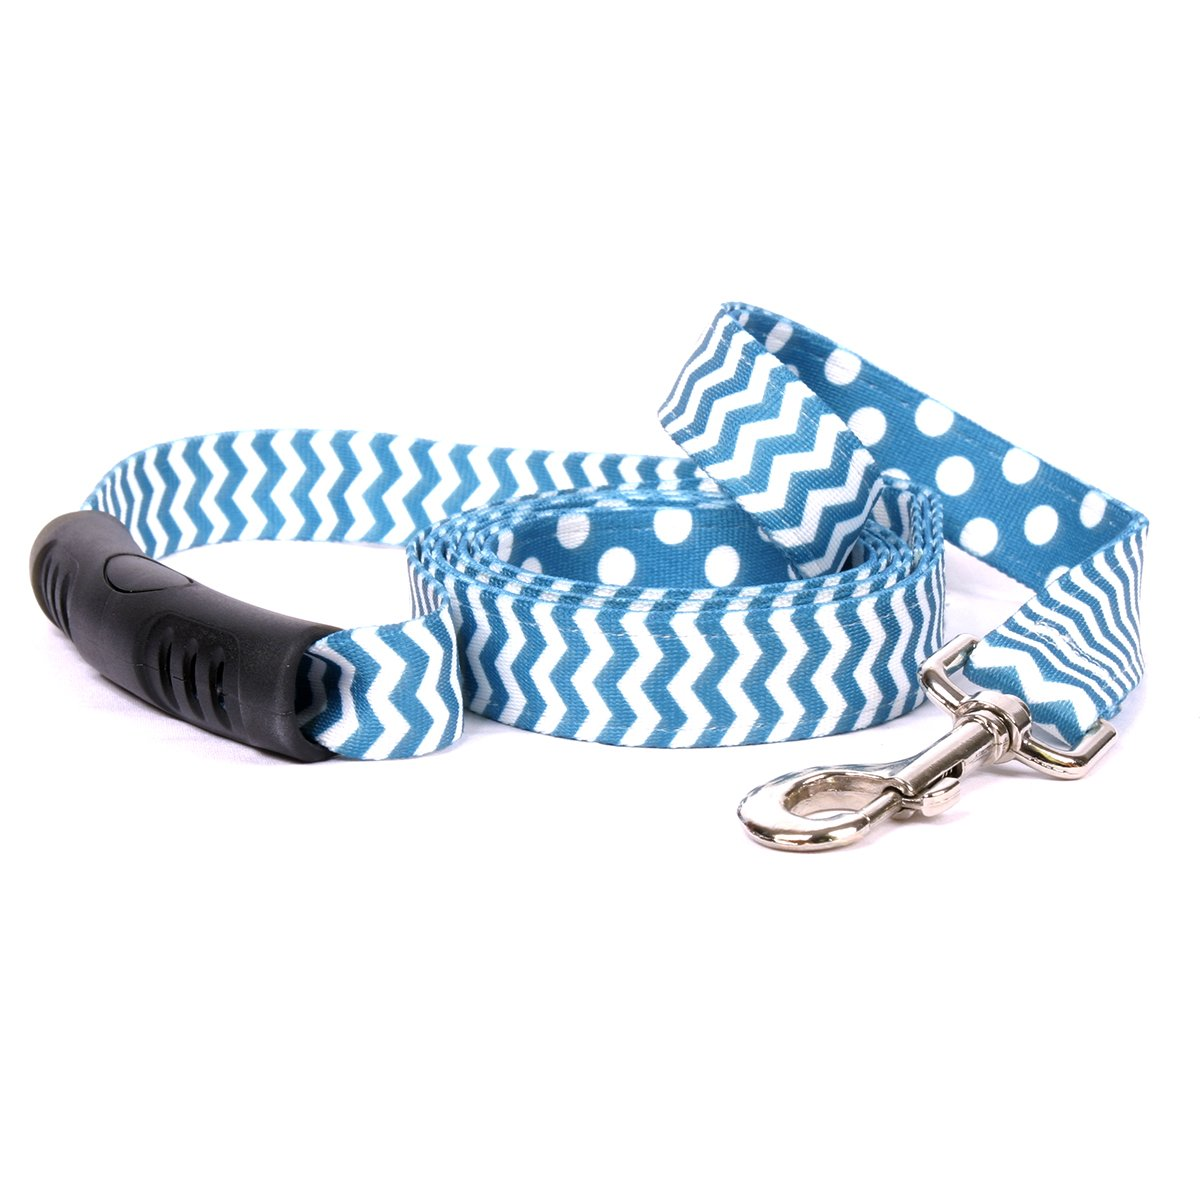 Yellow Dog Design Chevron-Blueberry Uptown Dog Leash 3/4'' Wide and 5' (60'') Long, Small/Medium